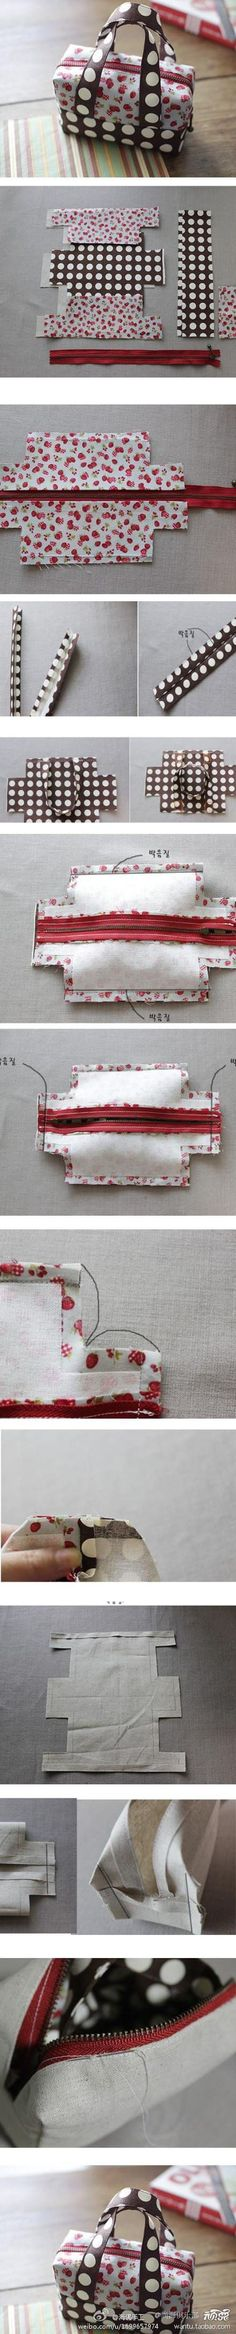 DIY Lunch Bag DIY Projects | UsefulDIY.com Follow Us on Facebook ==> http://www.facebook.com/UsefulDiy